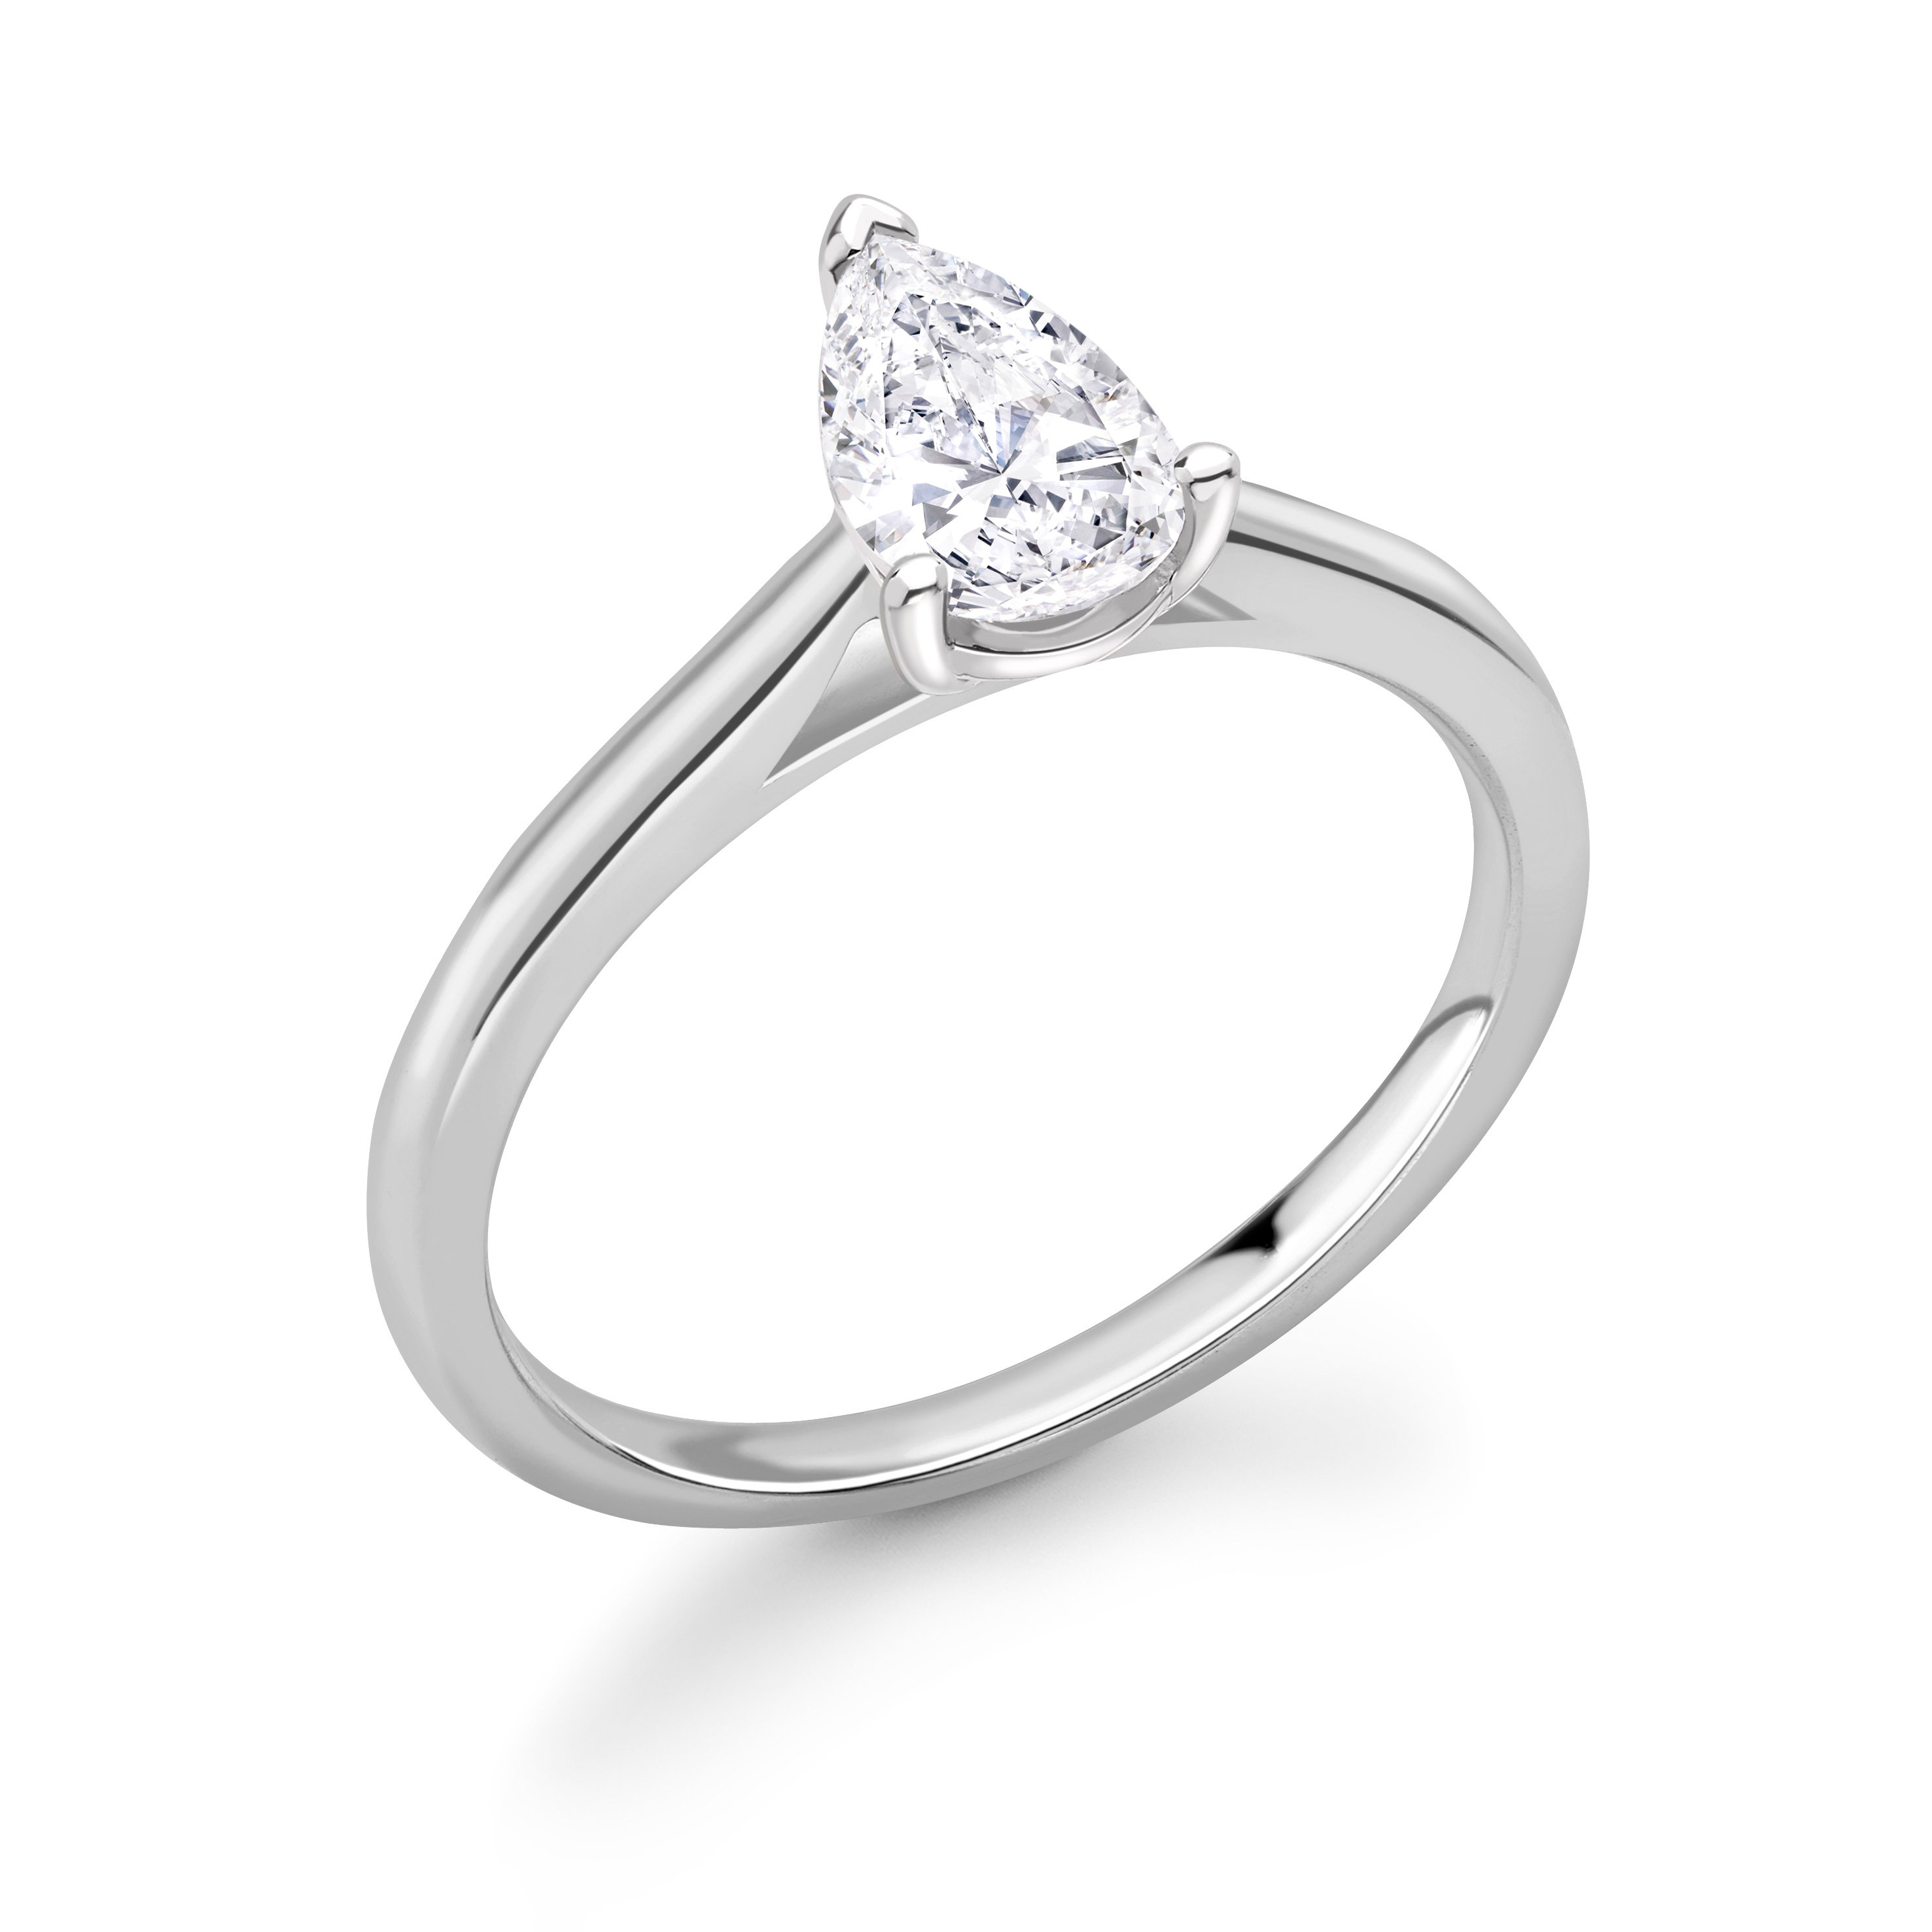 Classic Setting Pear Shape Solitaire Diamond Engagement Rings